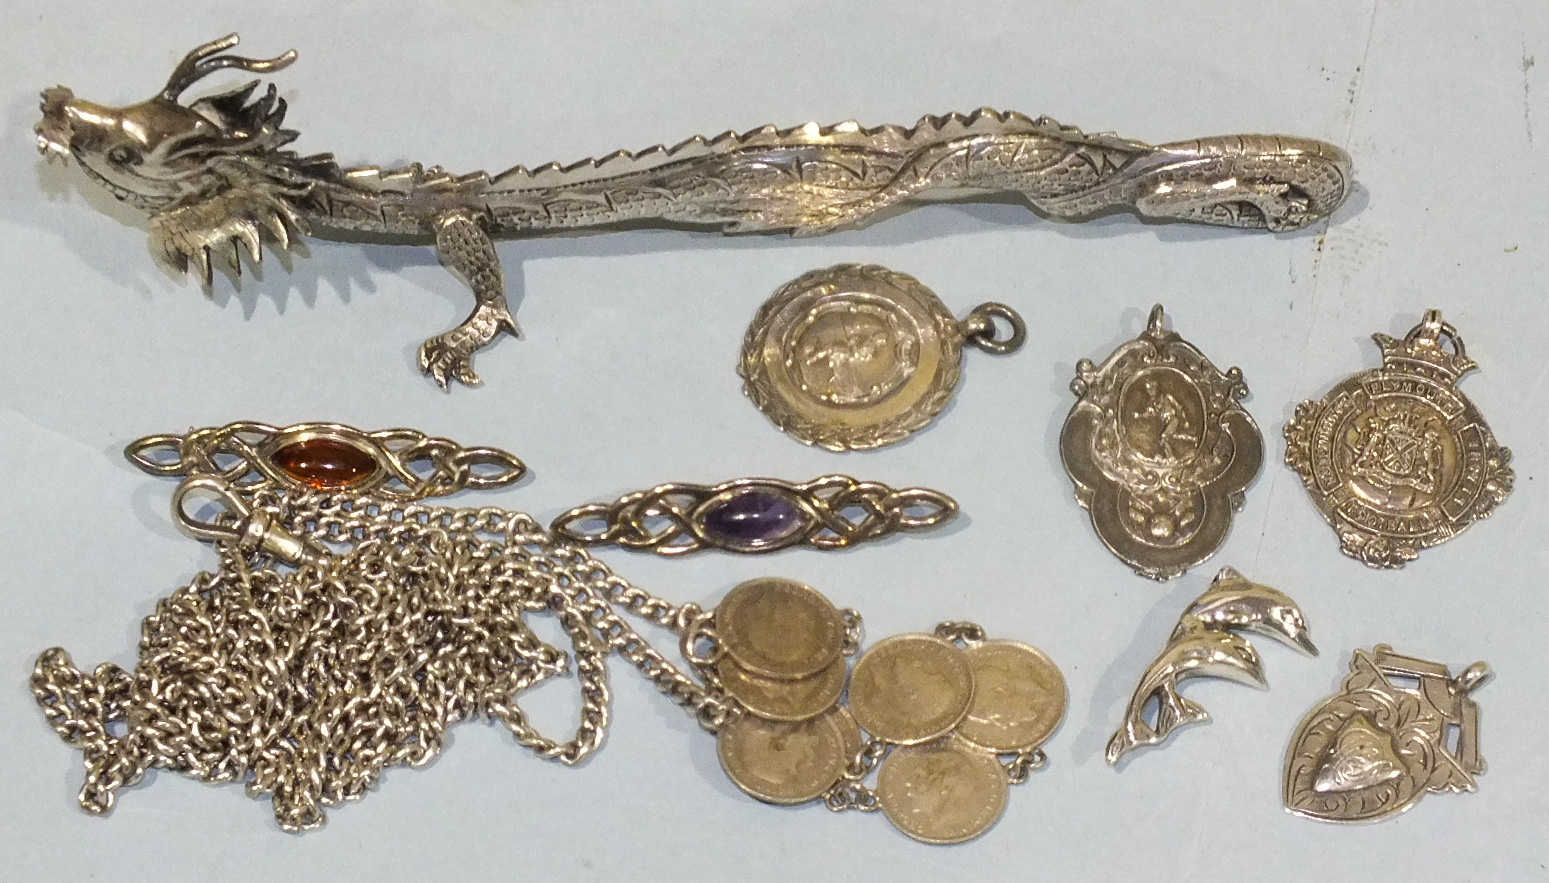 Lot 210 - A silver guard chain, various silver medallions, brooches and a Chinese white metal dragon, total